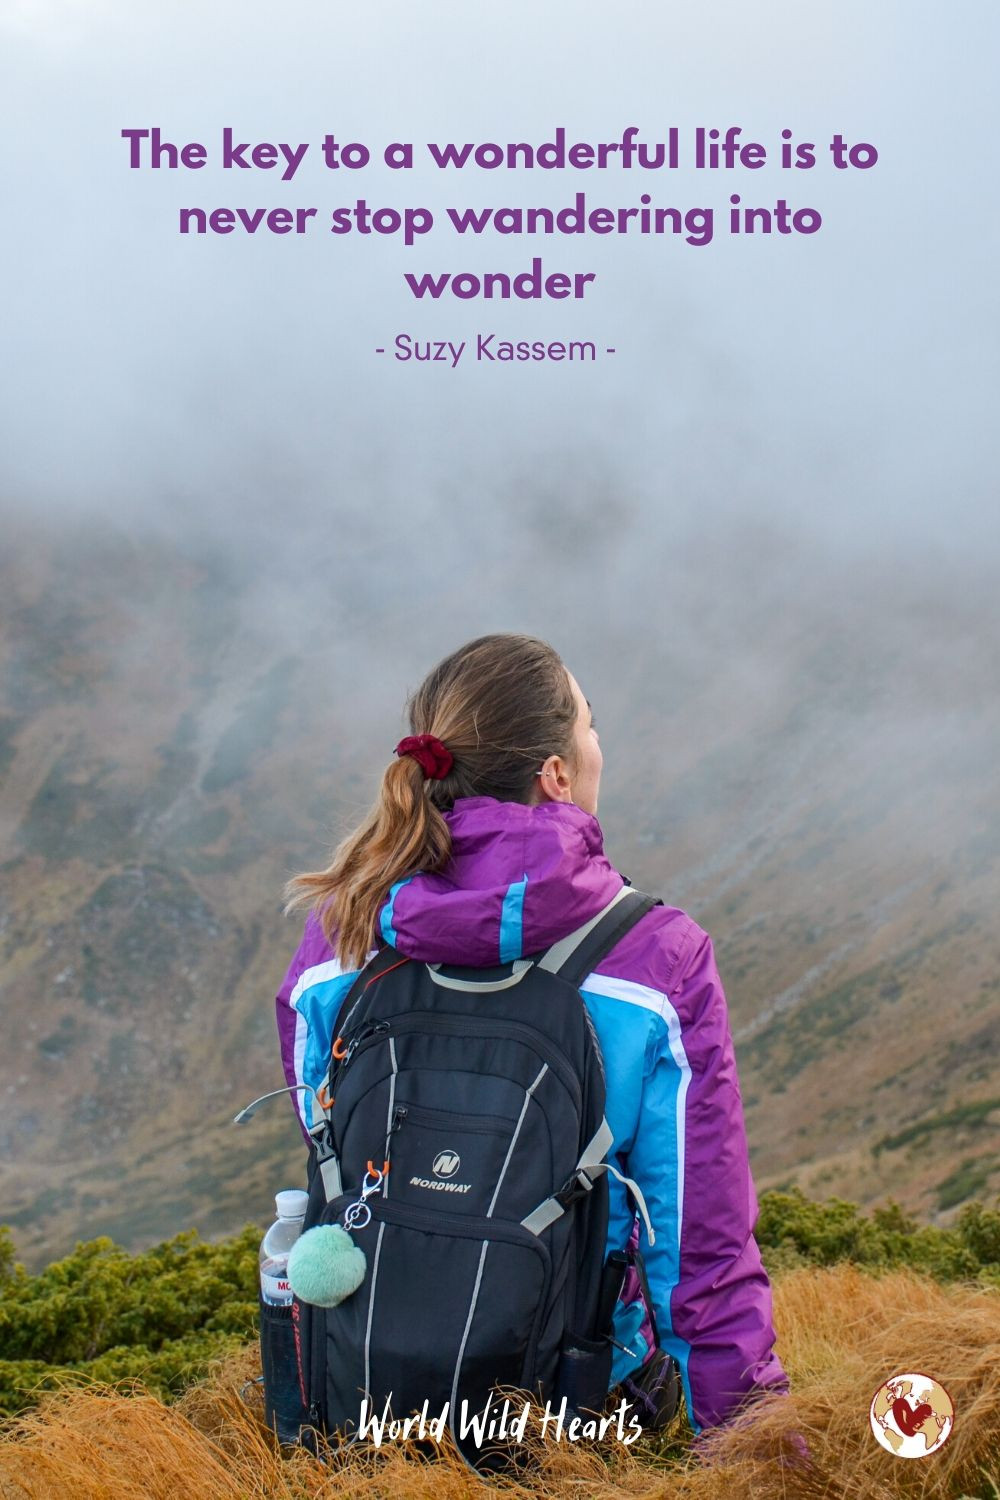 Wanderlust quote for wanderers